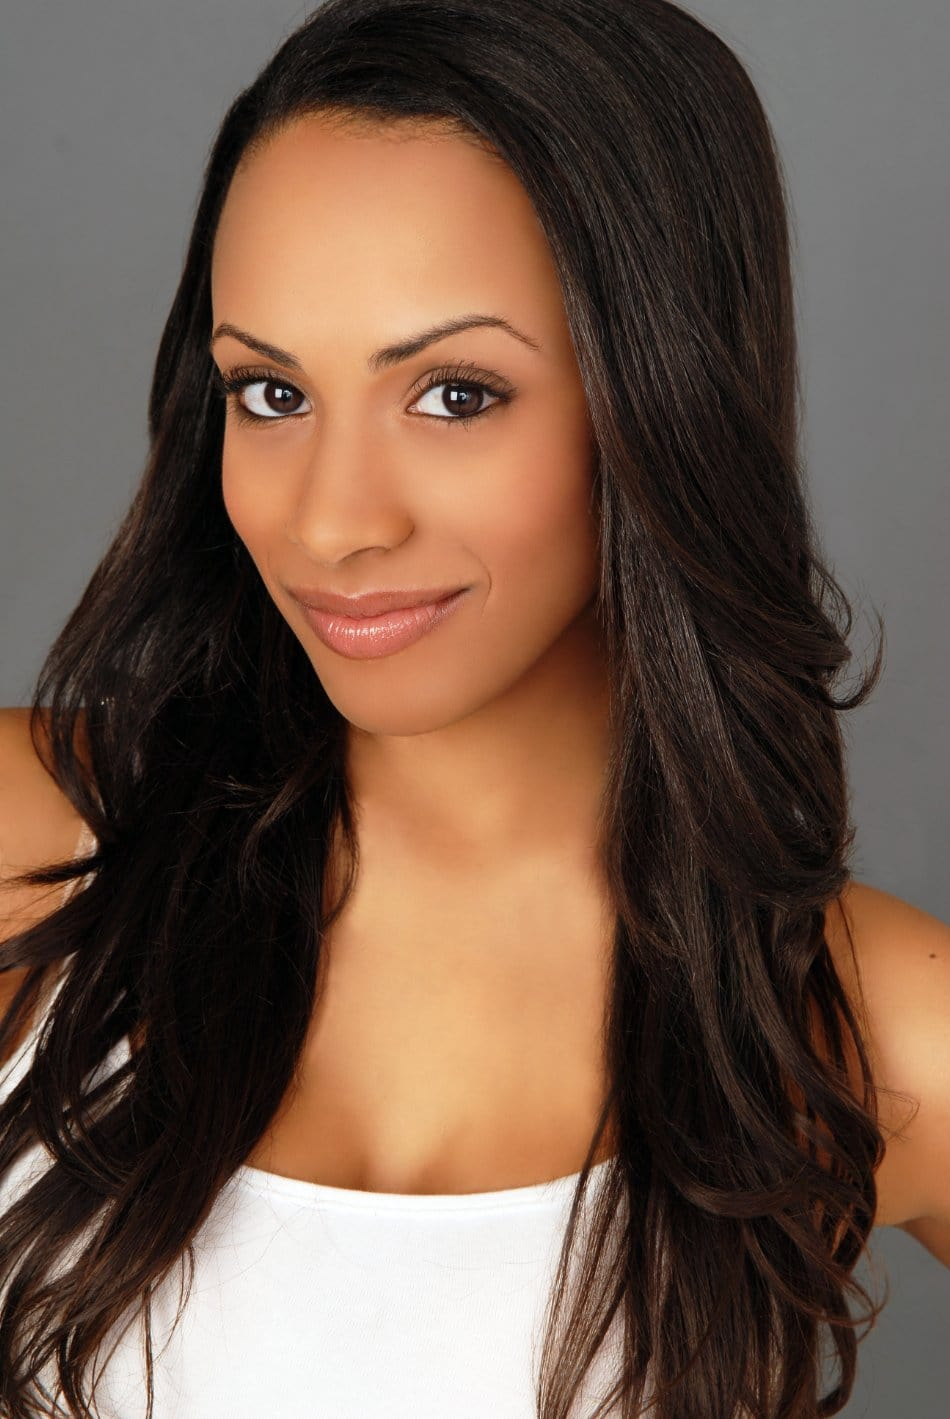 nicolette robinson instagramnicolette robinson wiki, nicolette robinson instagram, nicolette robinson actress, nicolette robinson hamilton, nicolette robinson broadway, nicolette robinson hart of dixie, nicolette robinson wedding, nicolette robinson twitter, nicolette robinson and leslie odom jr, nicoletta robinson ink master, nicolette robinson wikipedia, nicolette robinson jemima and johnny, nicolette robinson, nicolette robinson ink master, nicolette robinson ink, nicolette robinson feet, nicolette robinson hot, nicolette robinson jewish, nicolette robinson photos, nicolette robinson biography